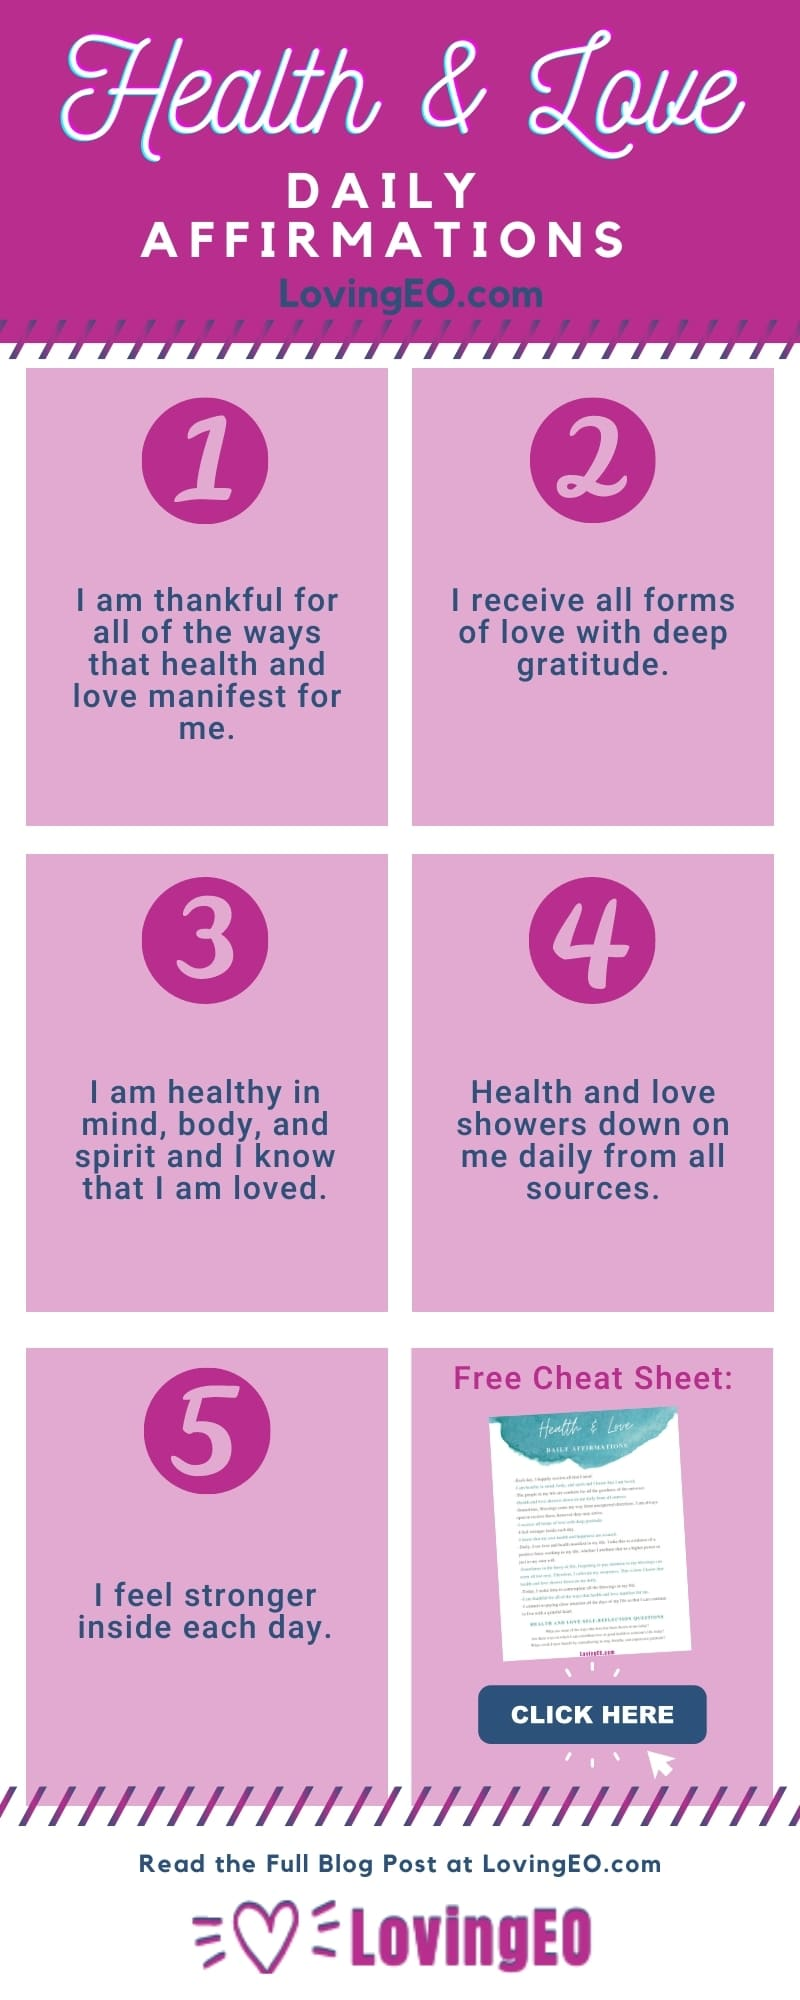 daily affirmations for love and health